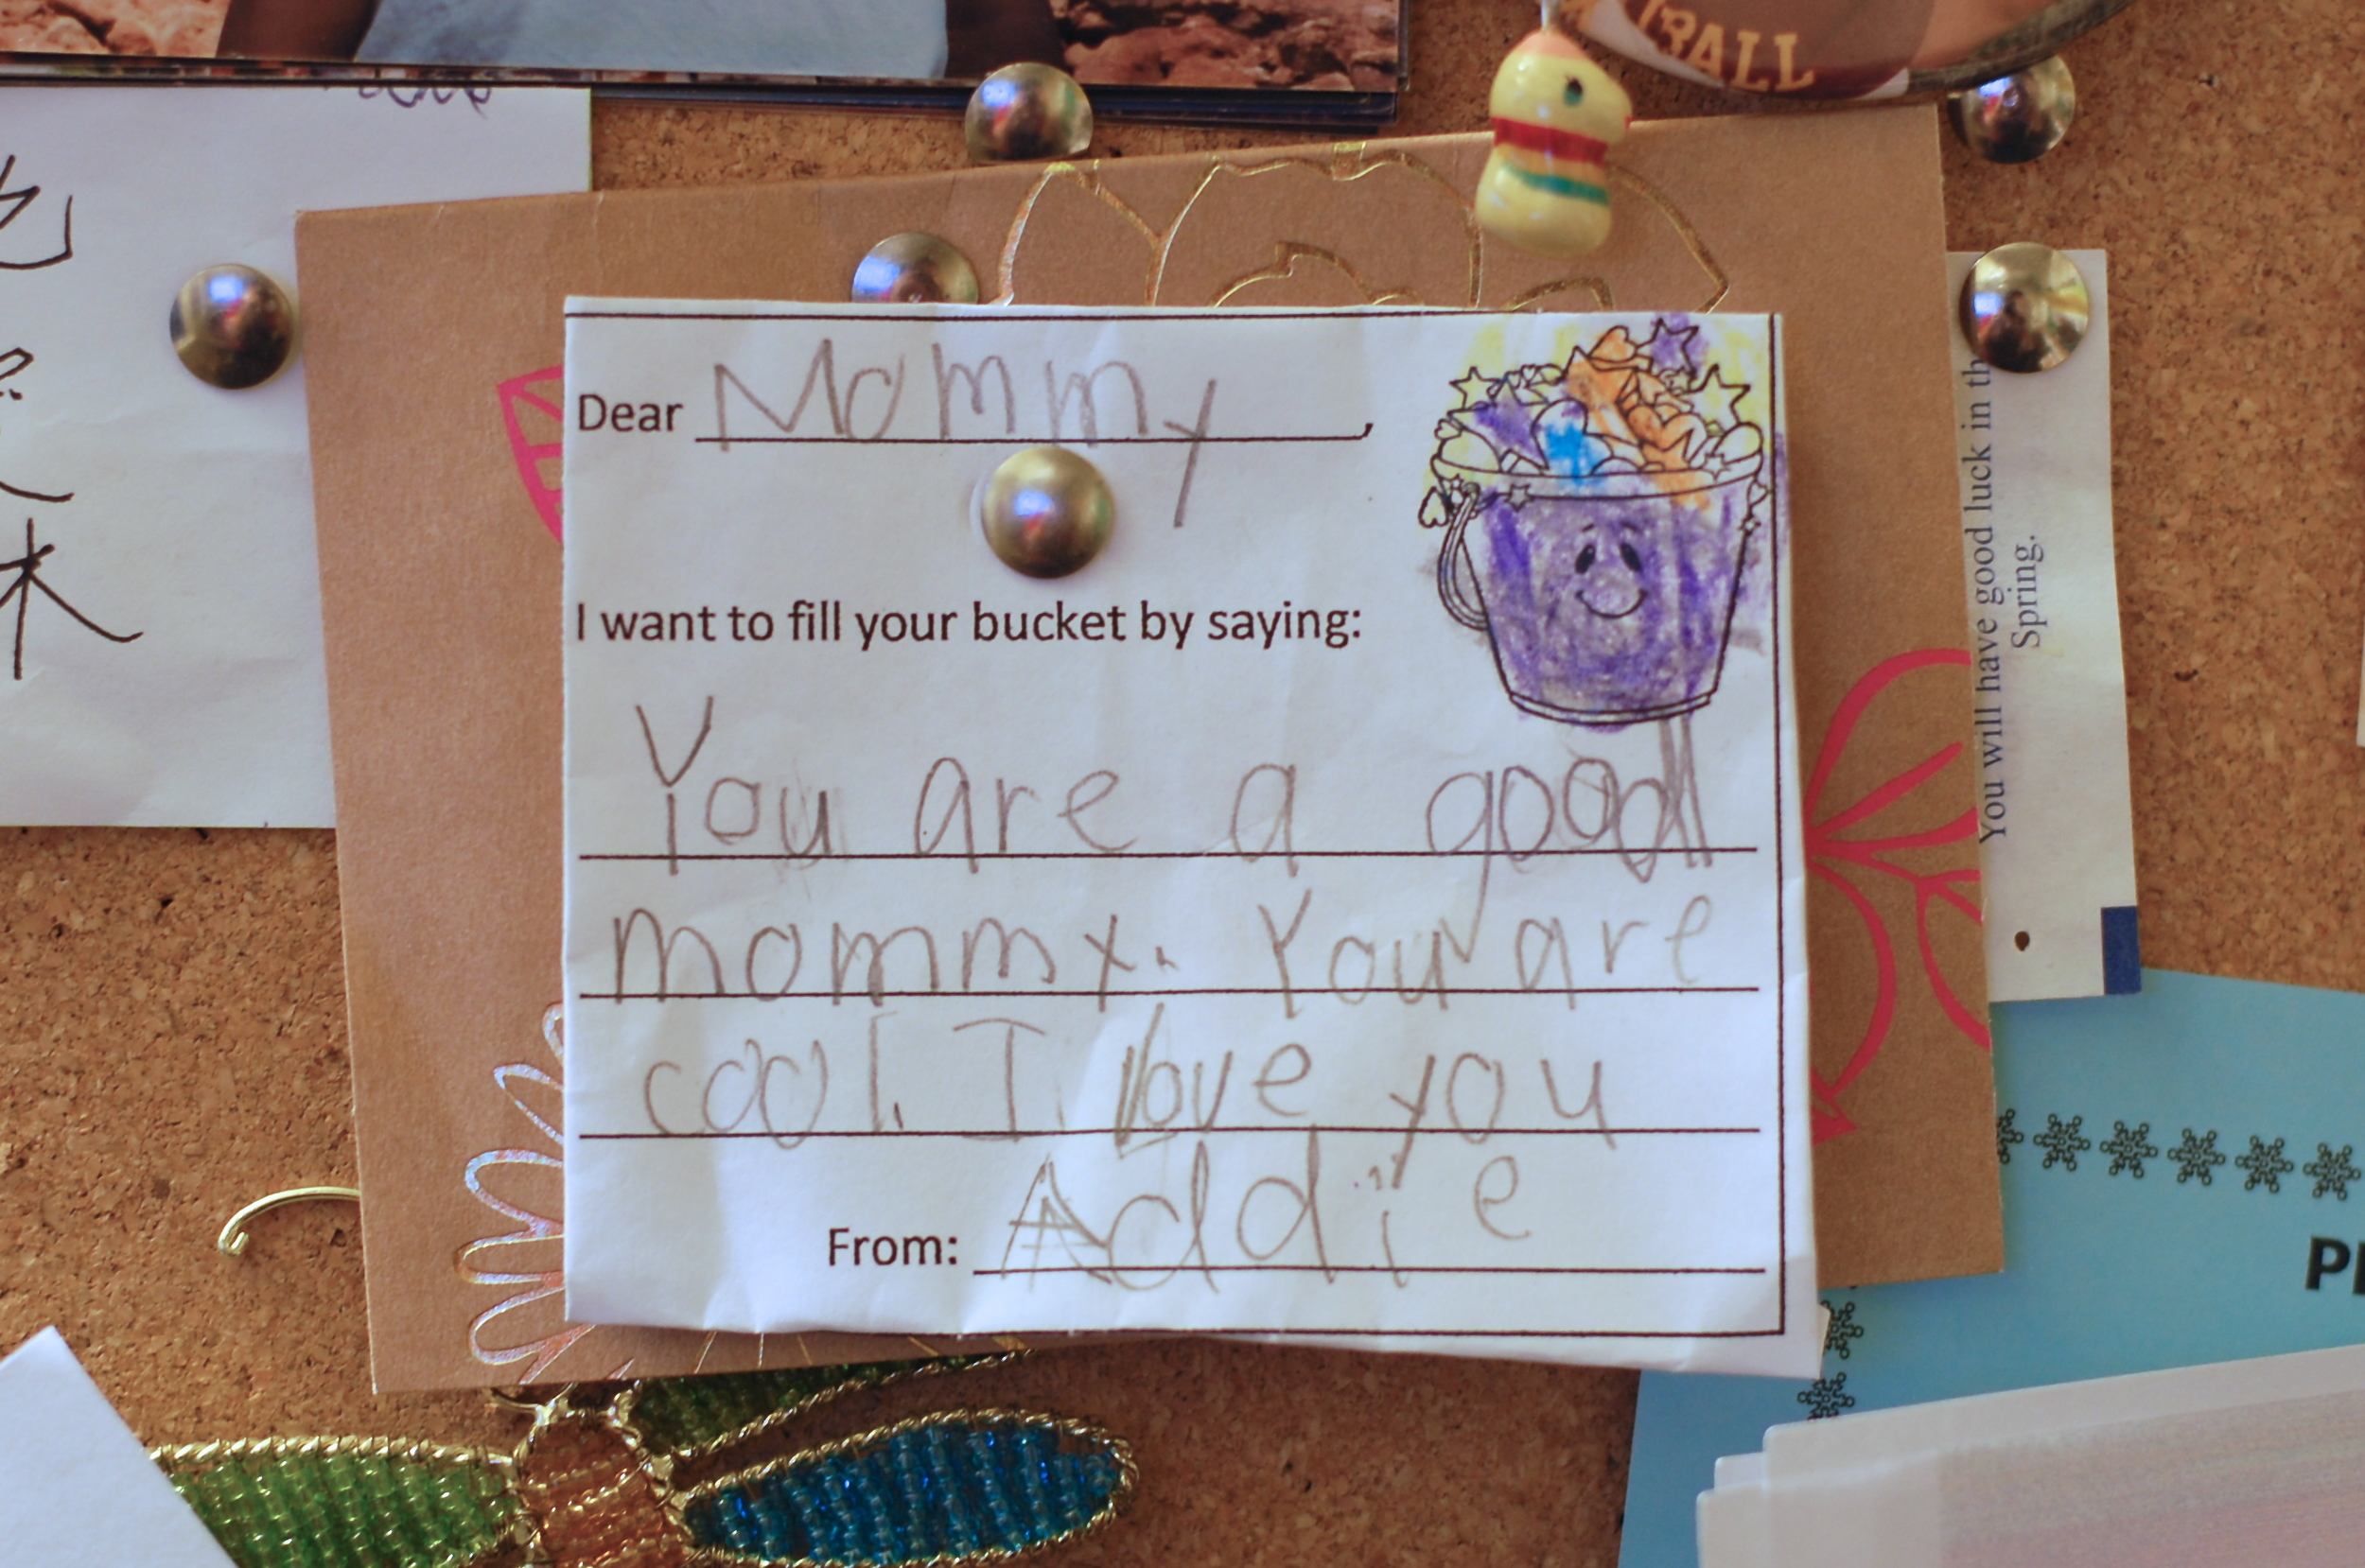 Dear Mommy, You are a good mommy. You are cool. I Love you. From: Addie